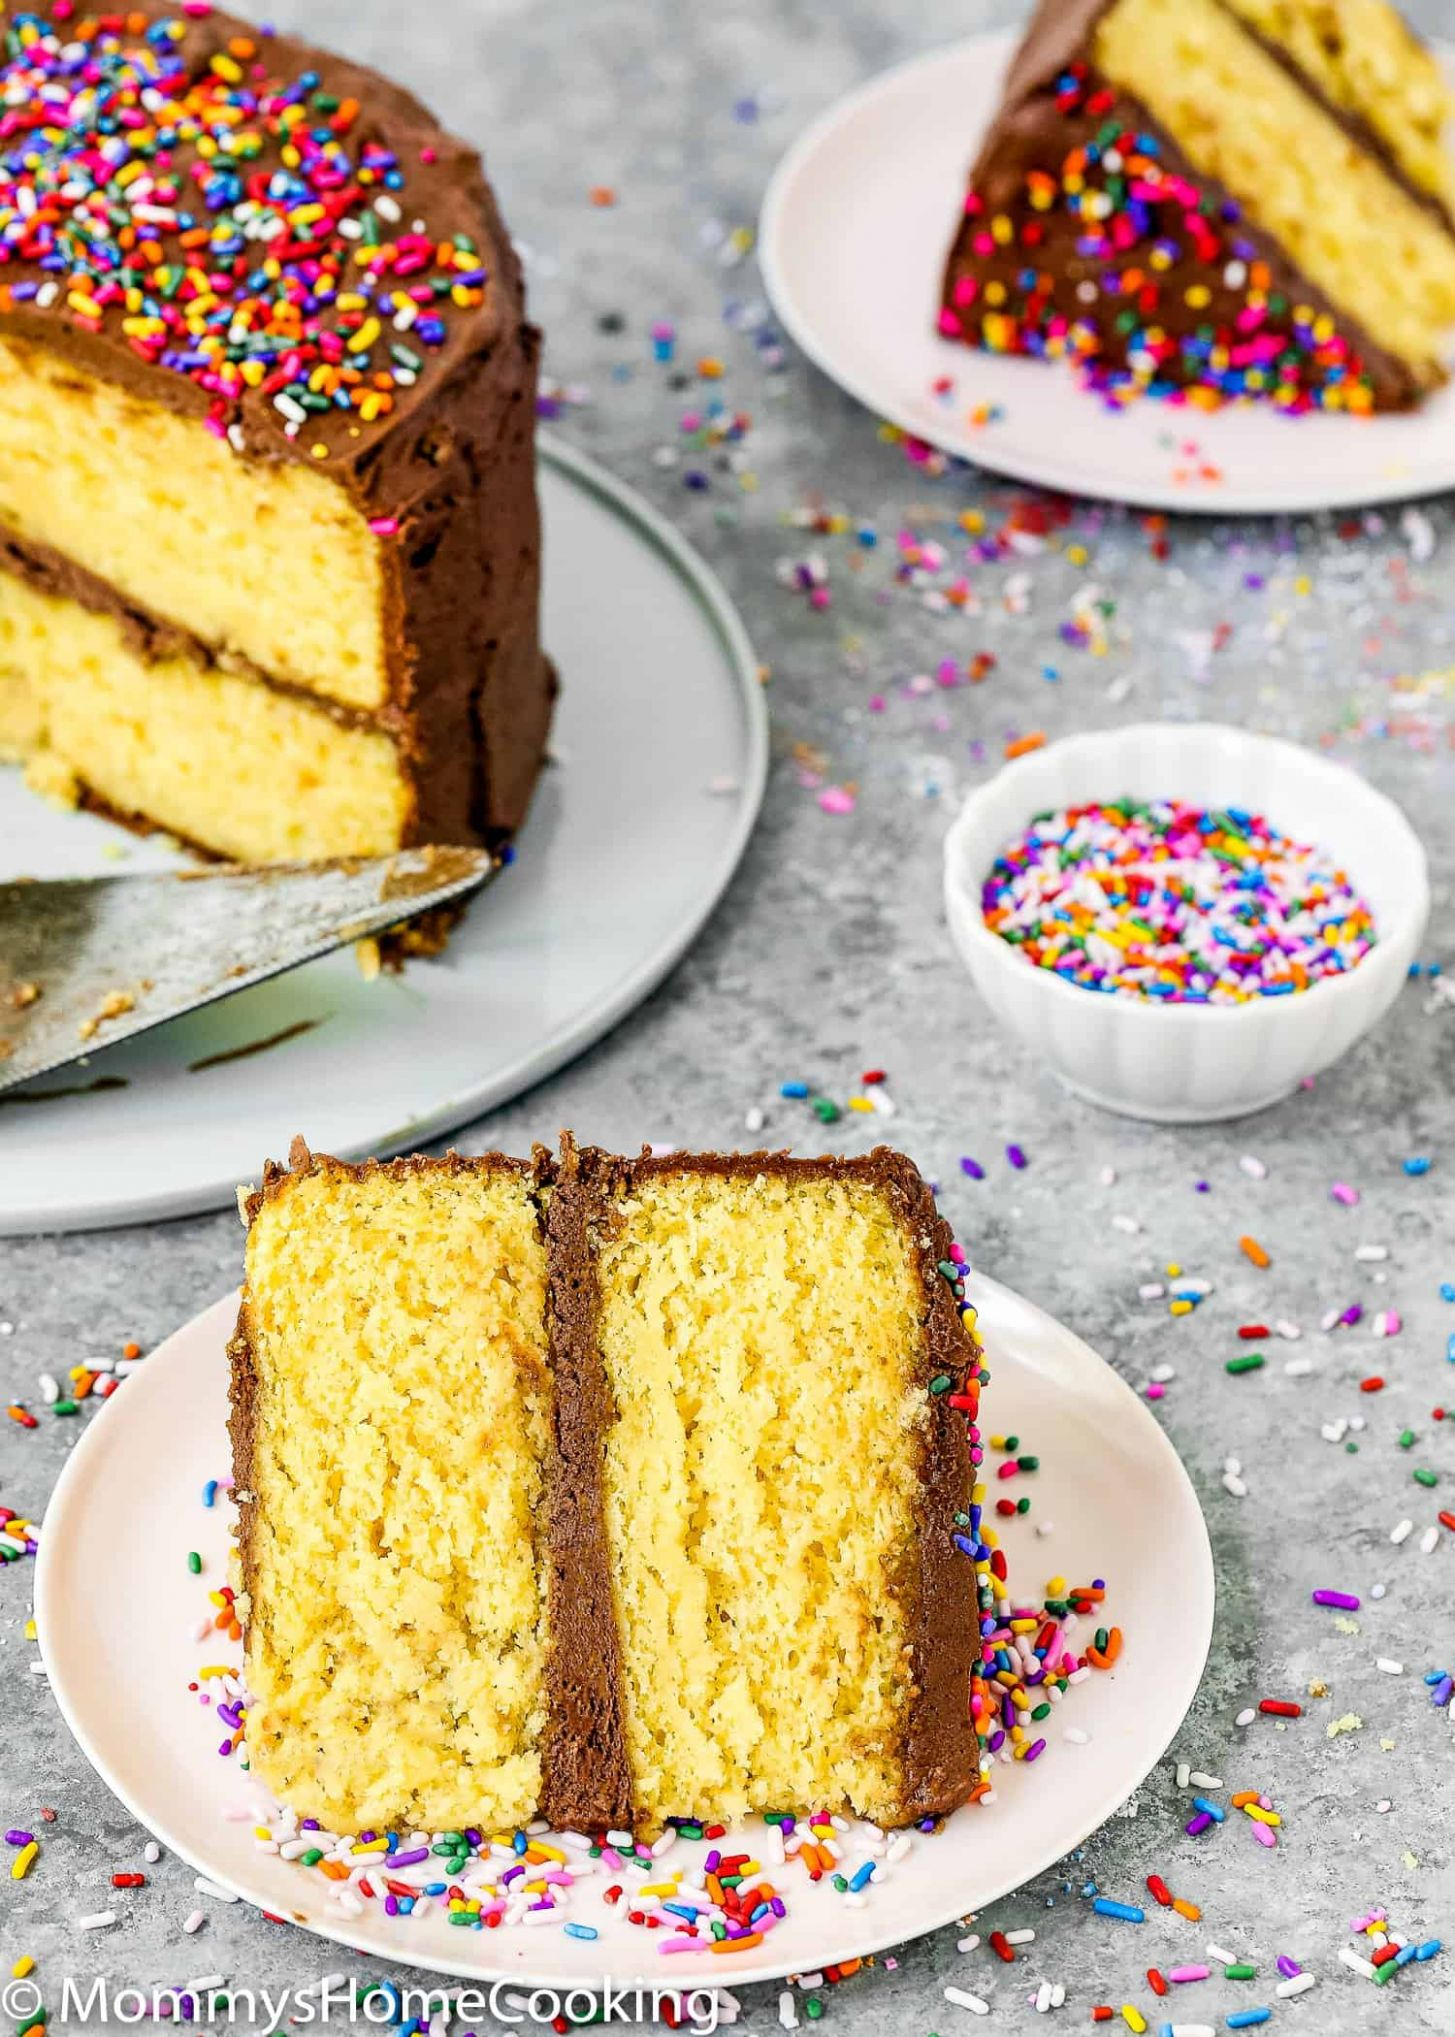 How to Make a Cake Mix Box without Eggs - Recipes Cake Without Egg